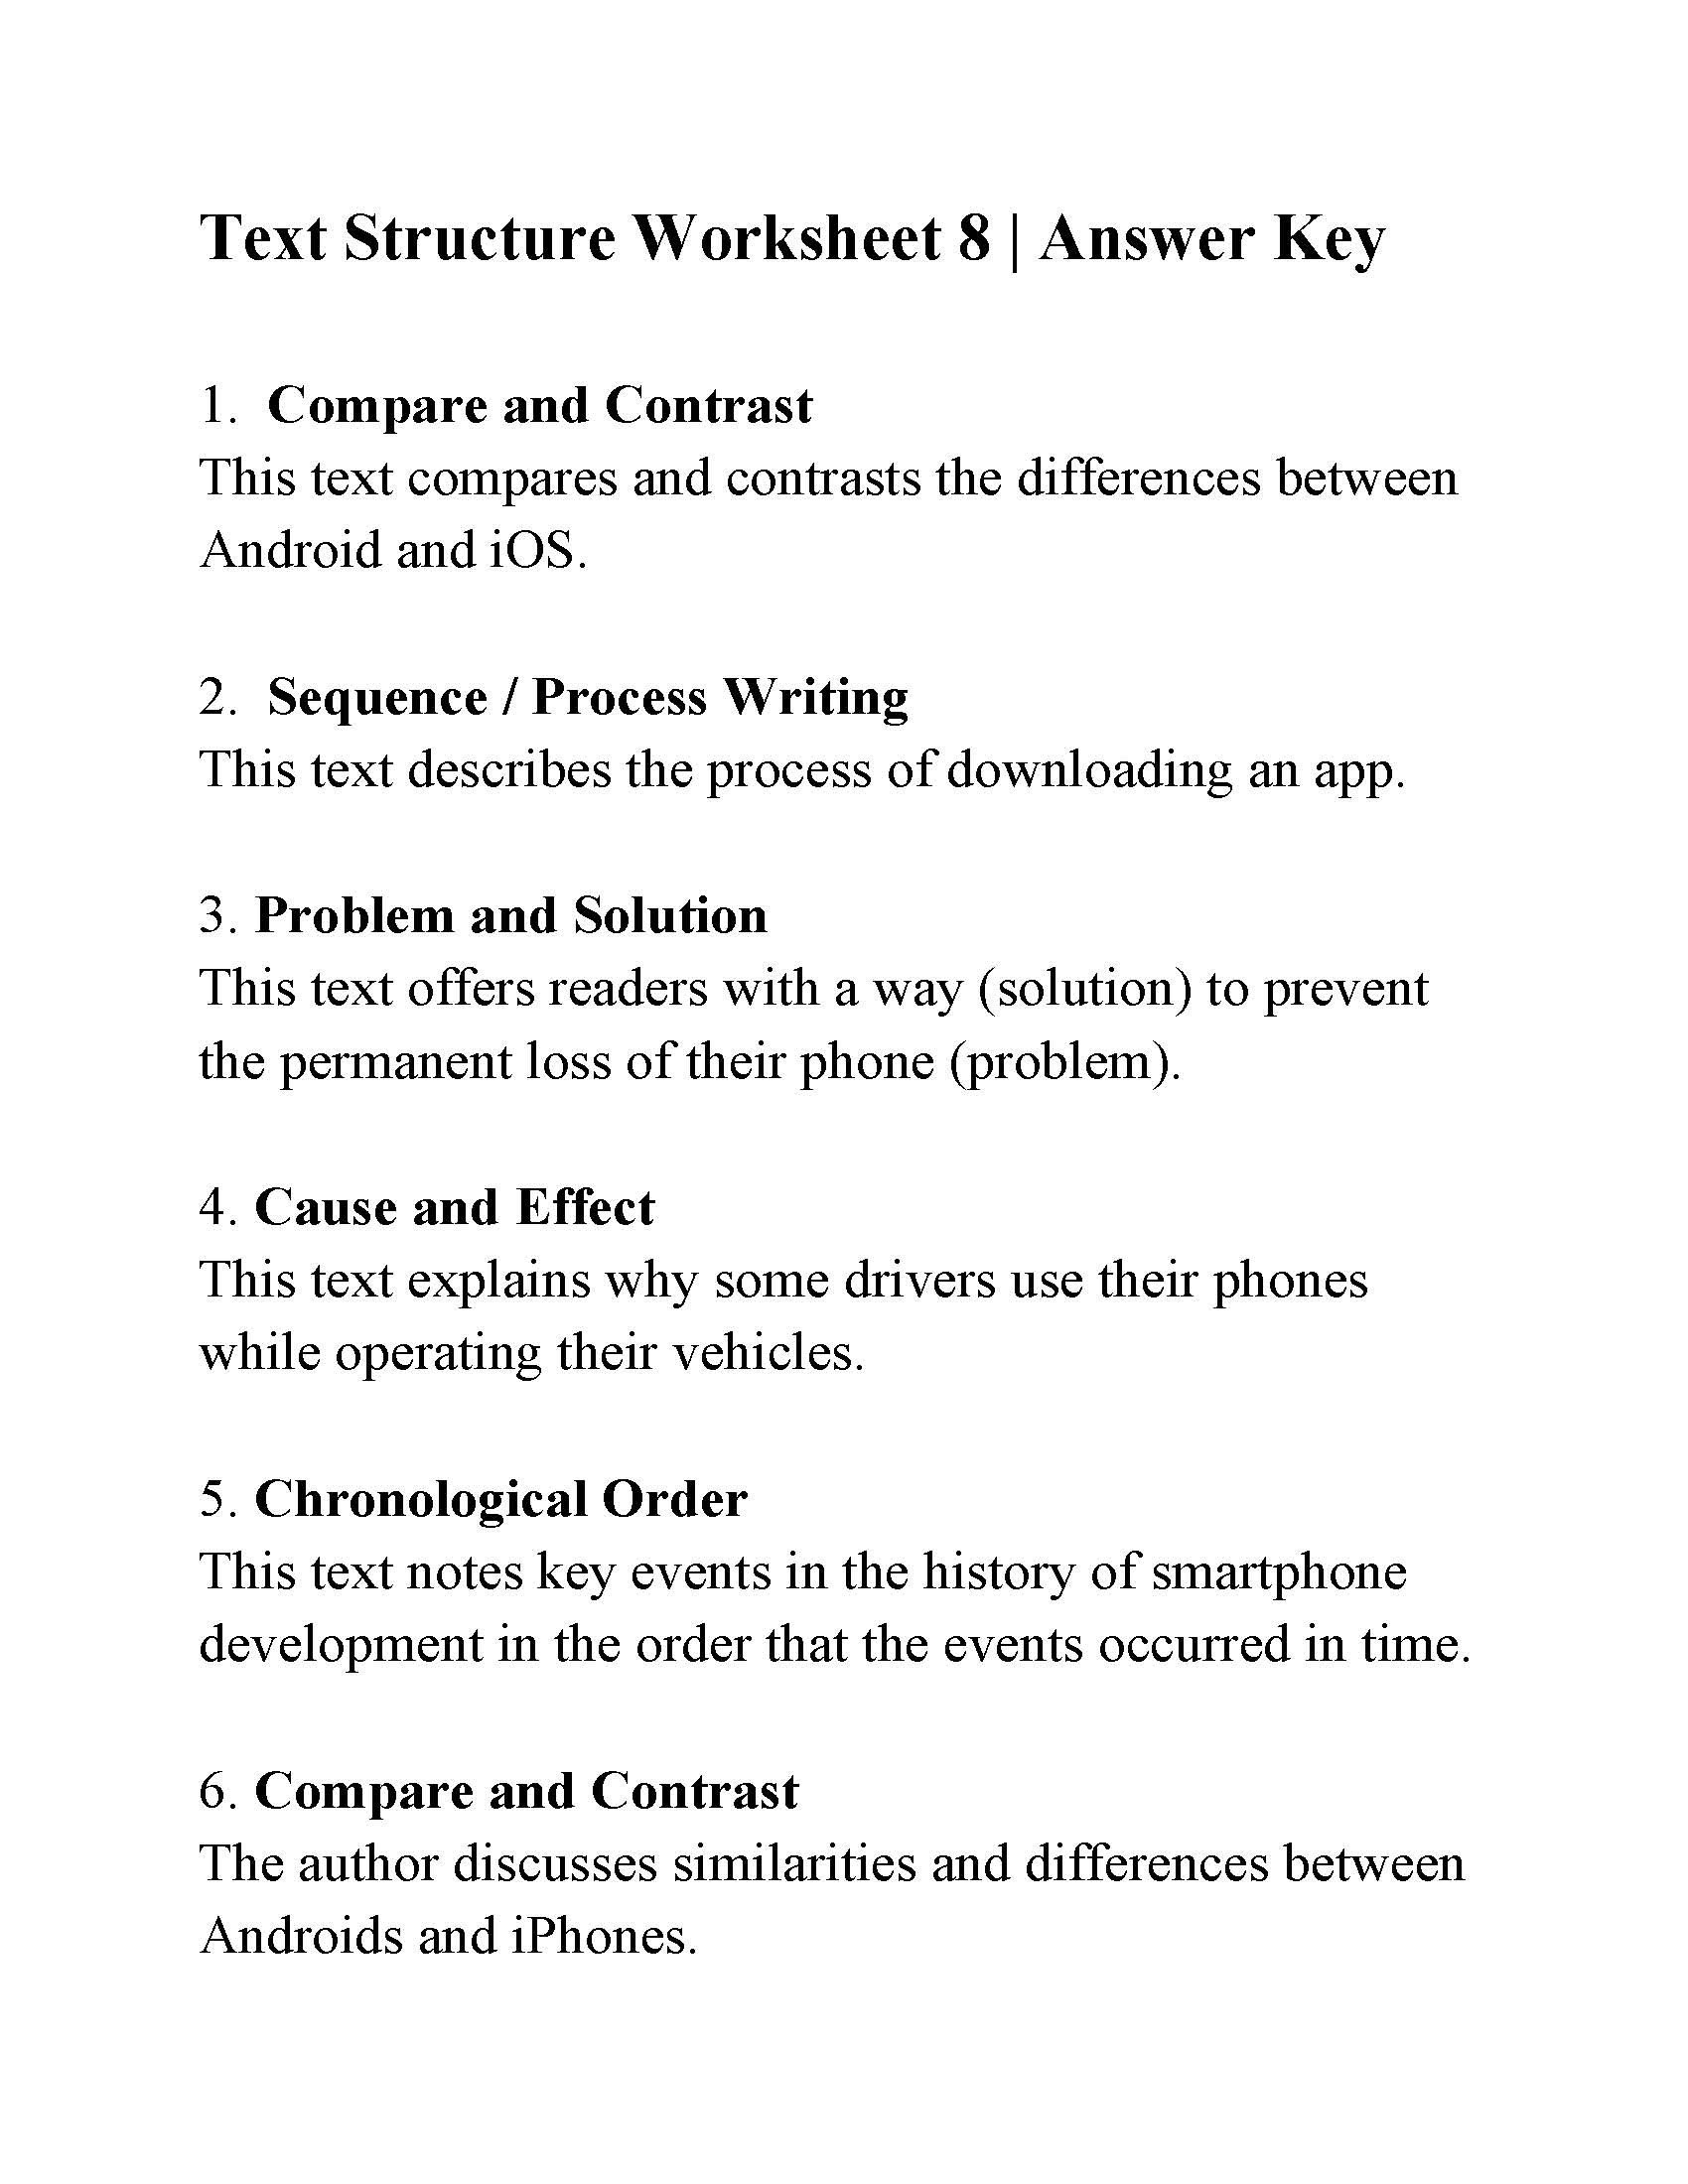 Problem and solution Reading Worksheets Text Structure Worksheet 8